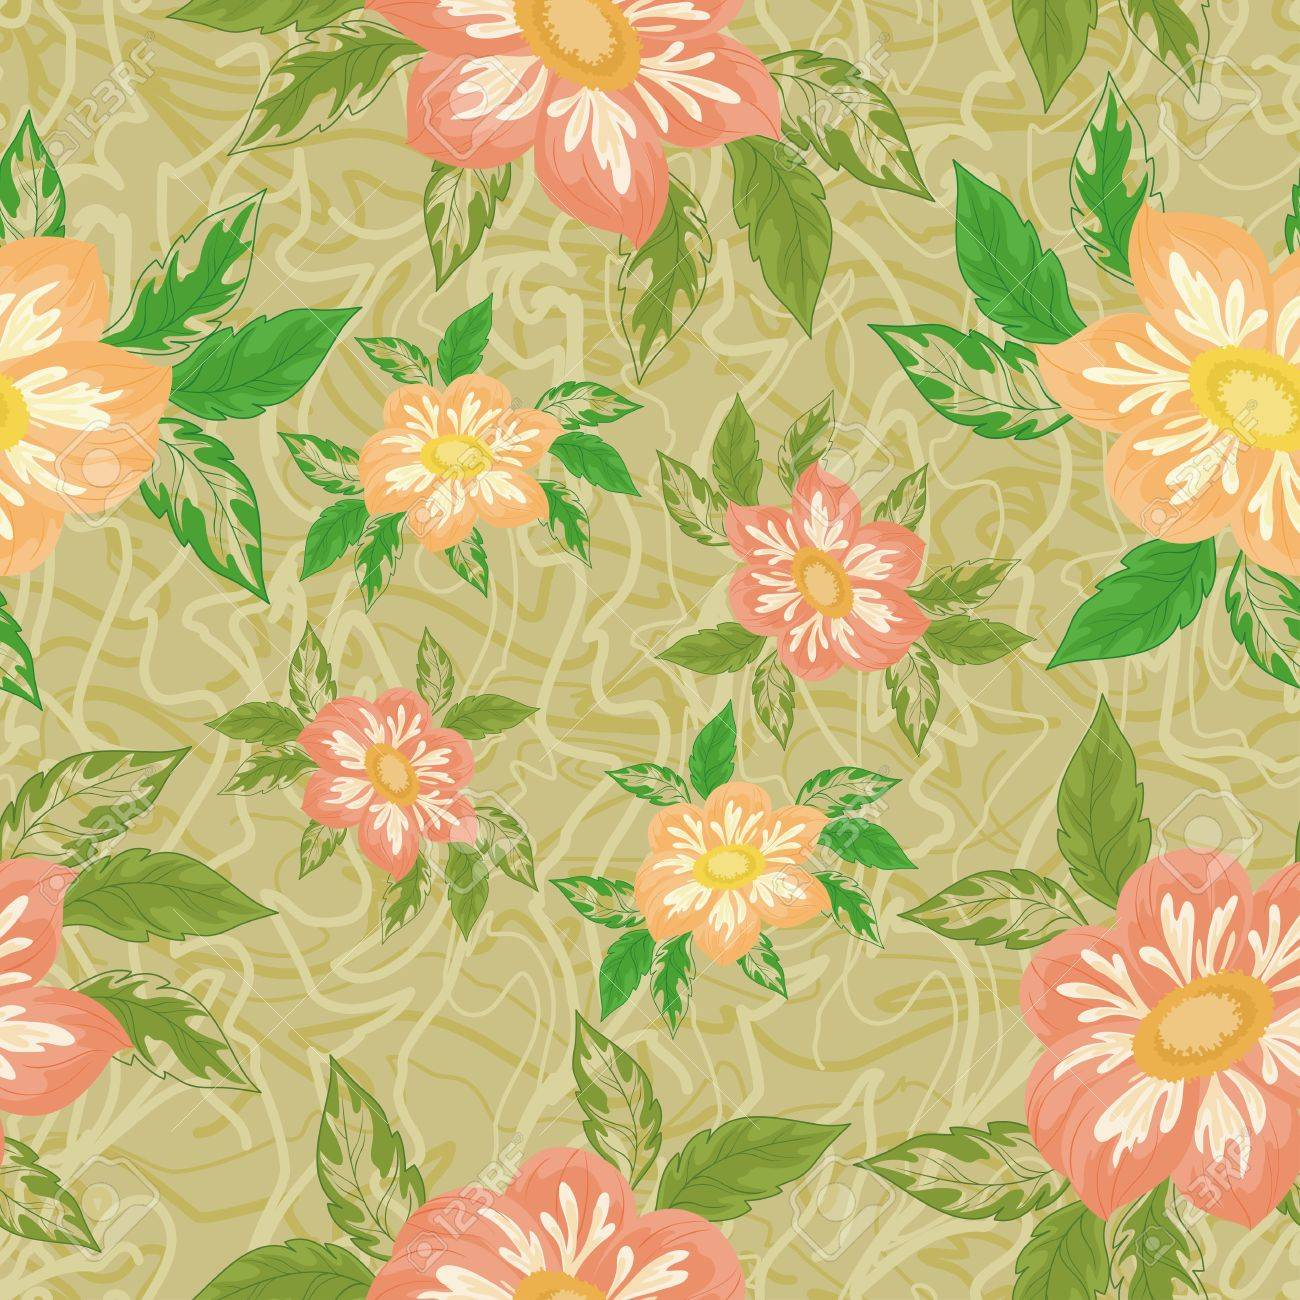 Seamless background with flowers and leaves dahlia Stock Vector - 13045277